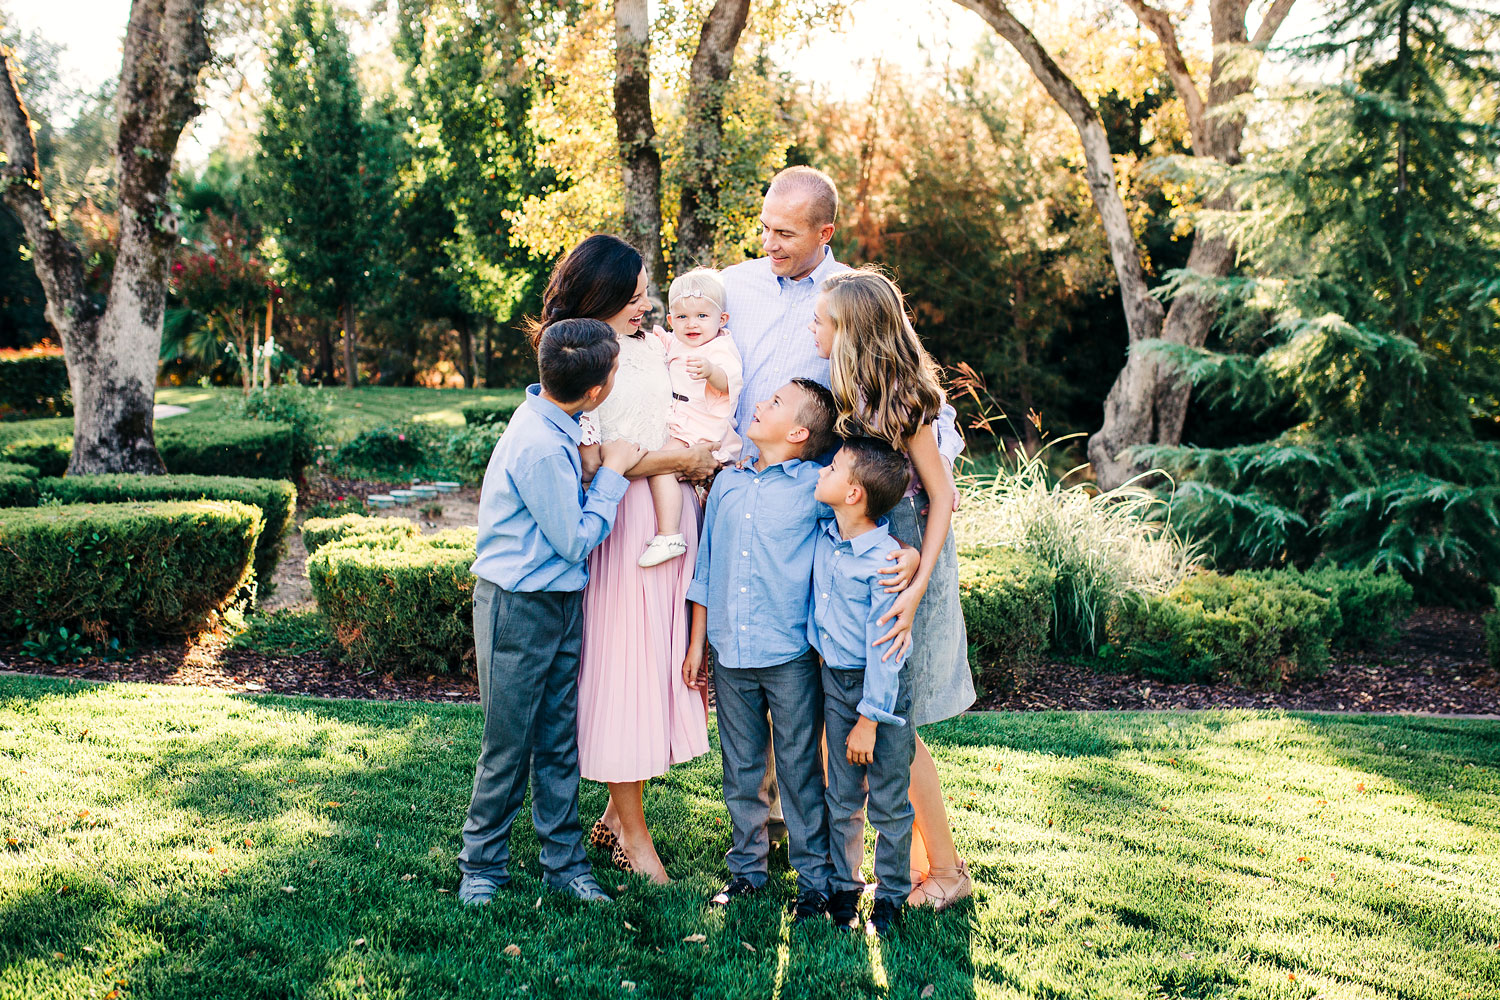 A family of six lovingly embrace each other during a family photo session with Amy Wright Photography in Roseville, California.